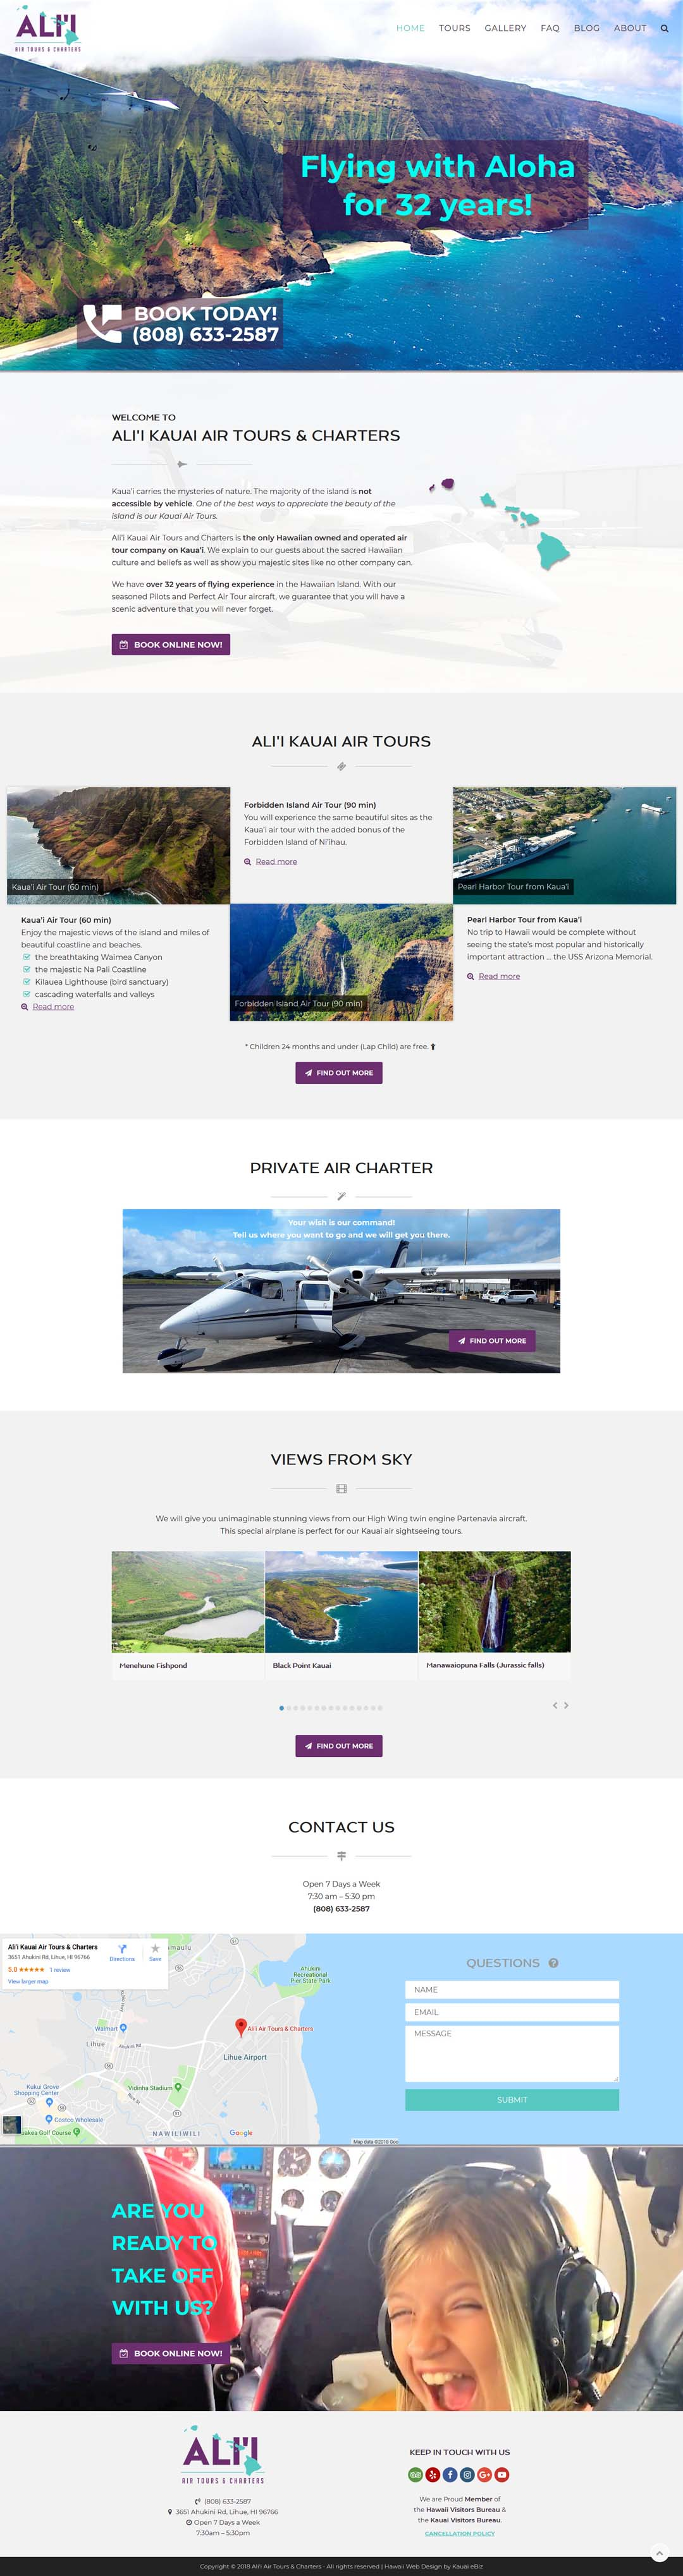 Ali'i Kauai Air Tours Website